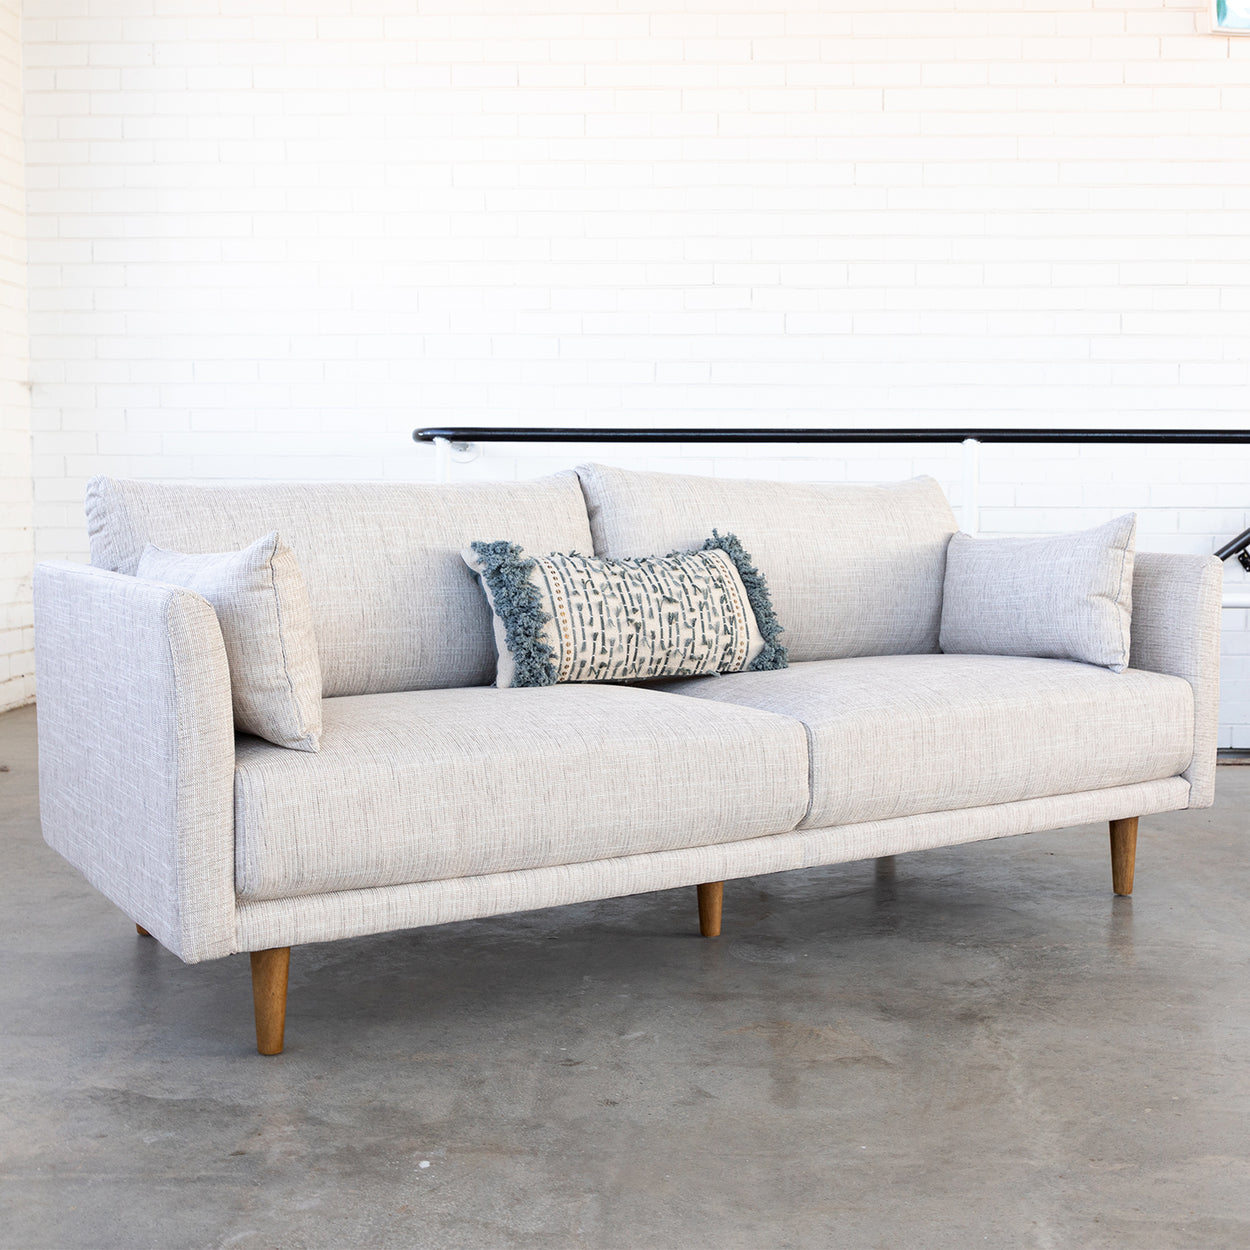 cream 3 seater sofa styled with pillows